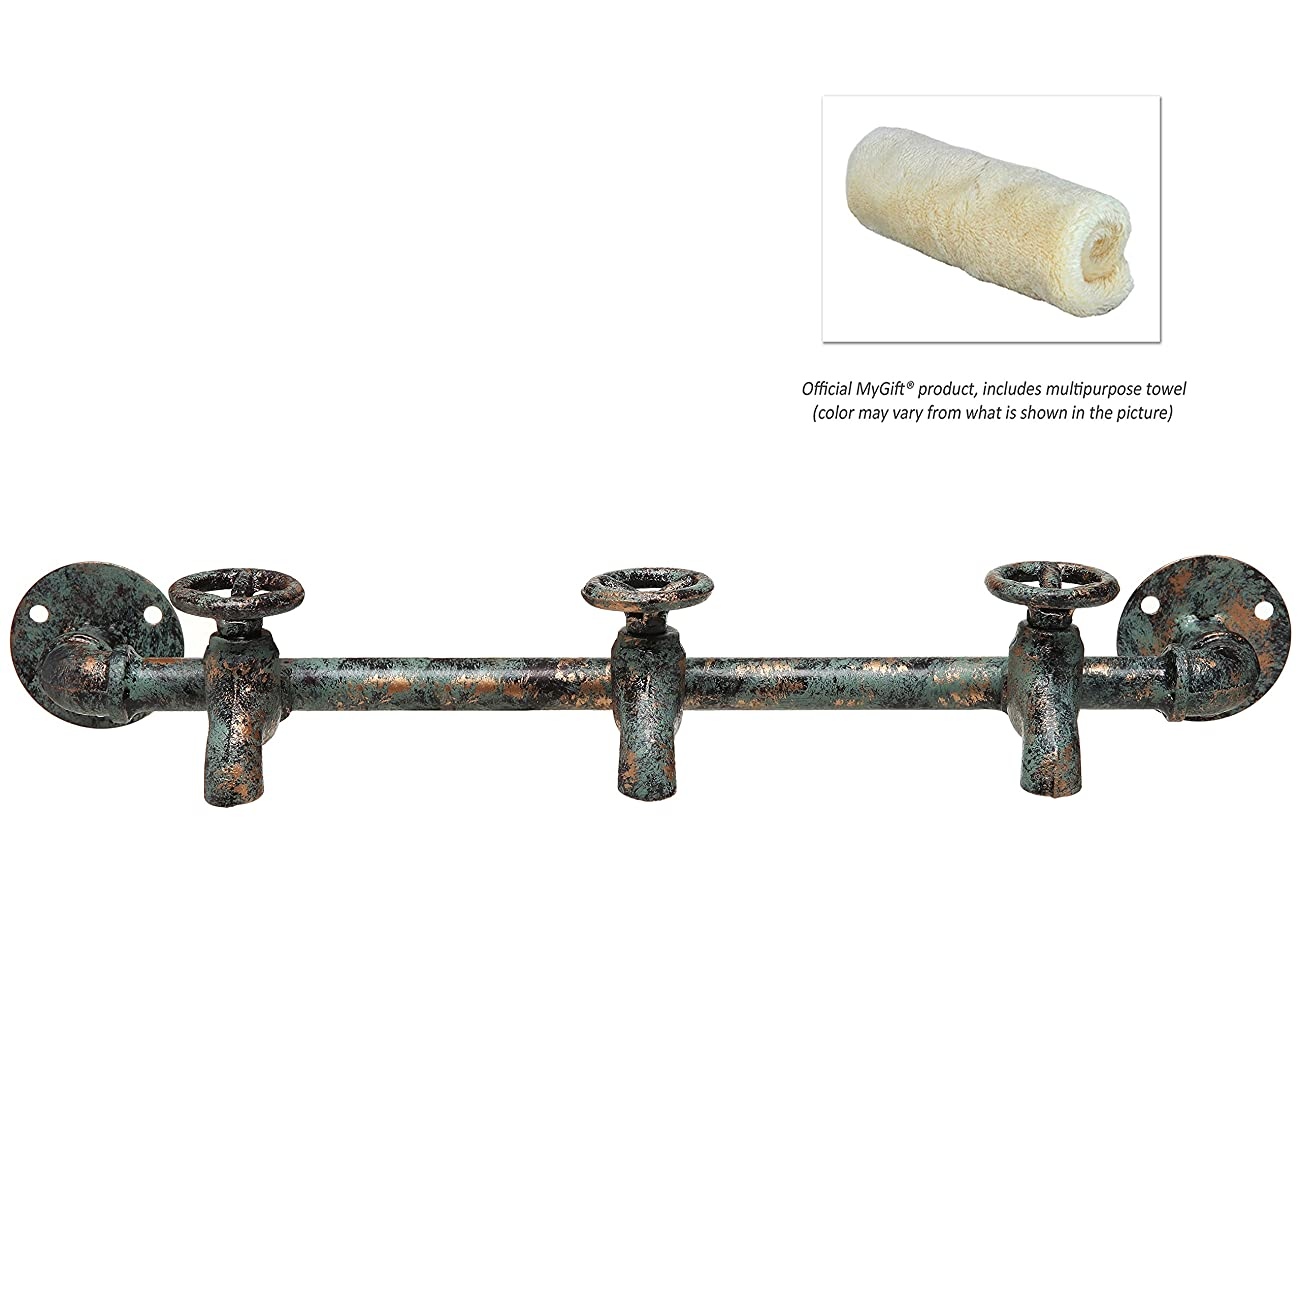 Rustic Industrial Faucet & Pipe Wall Mounted Iron Coat Hooks Garment Hanger / Towel Rack Bar - Turquoise 2